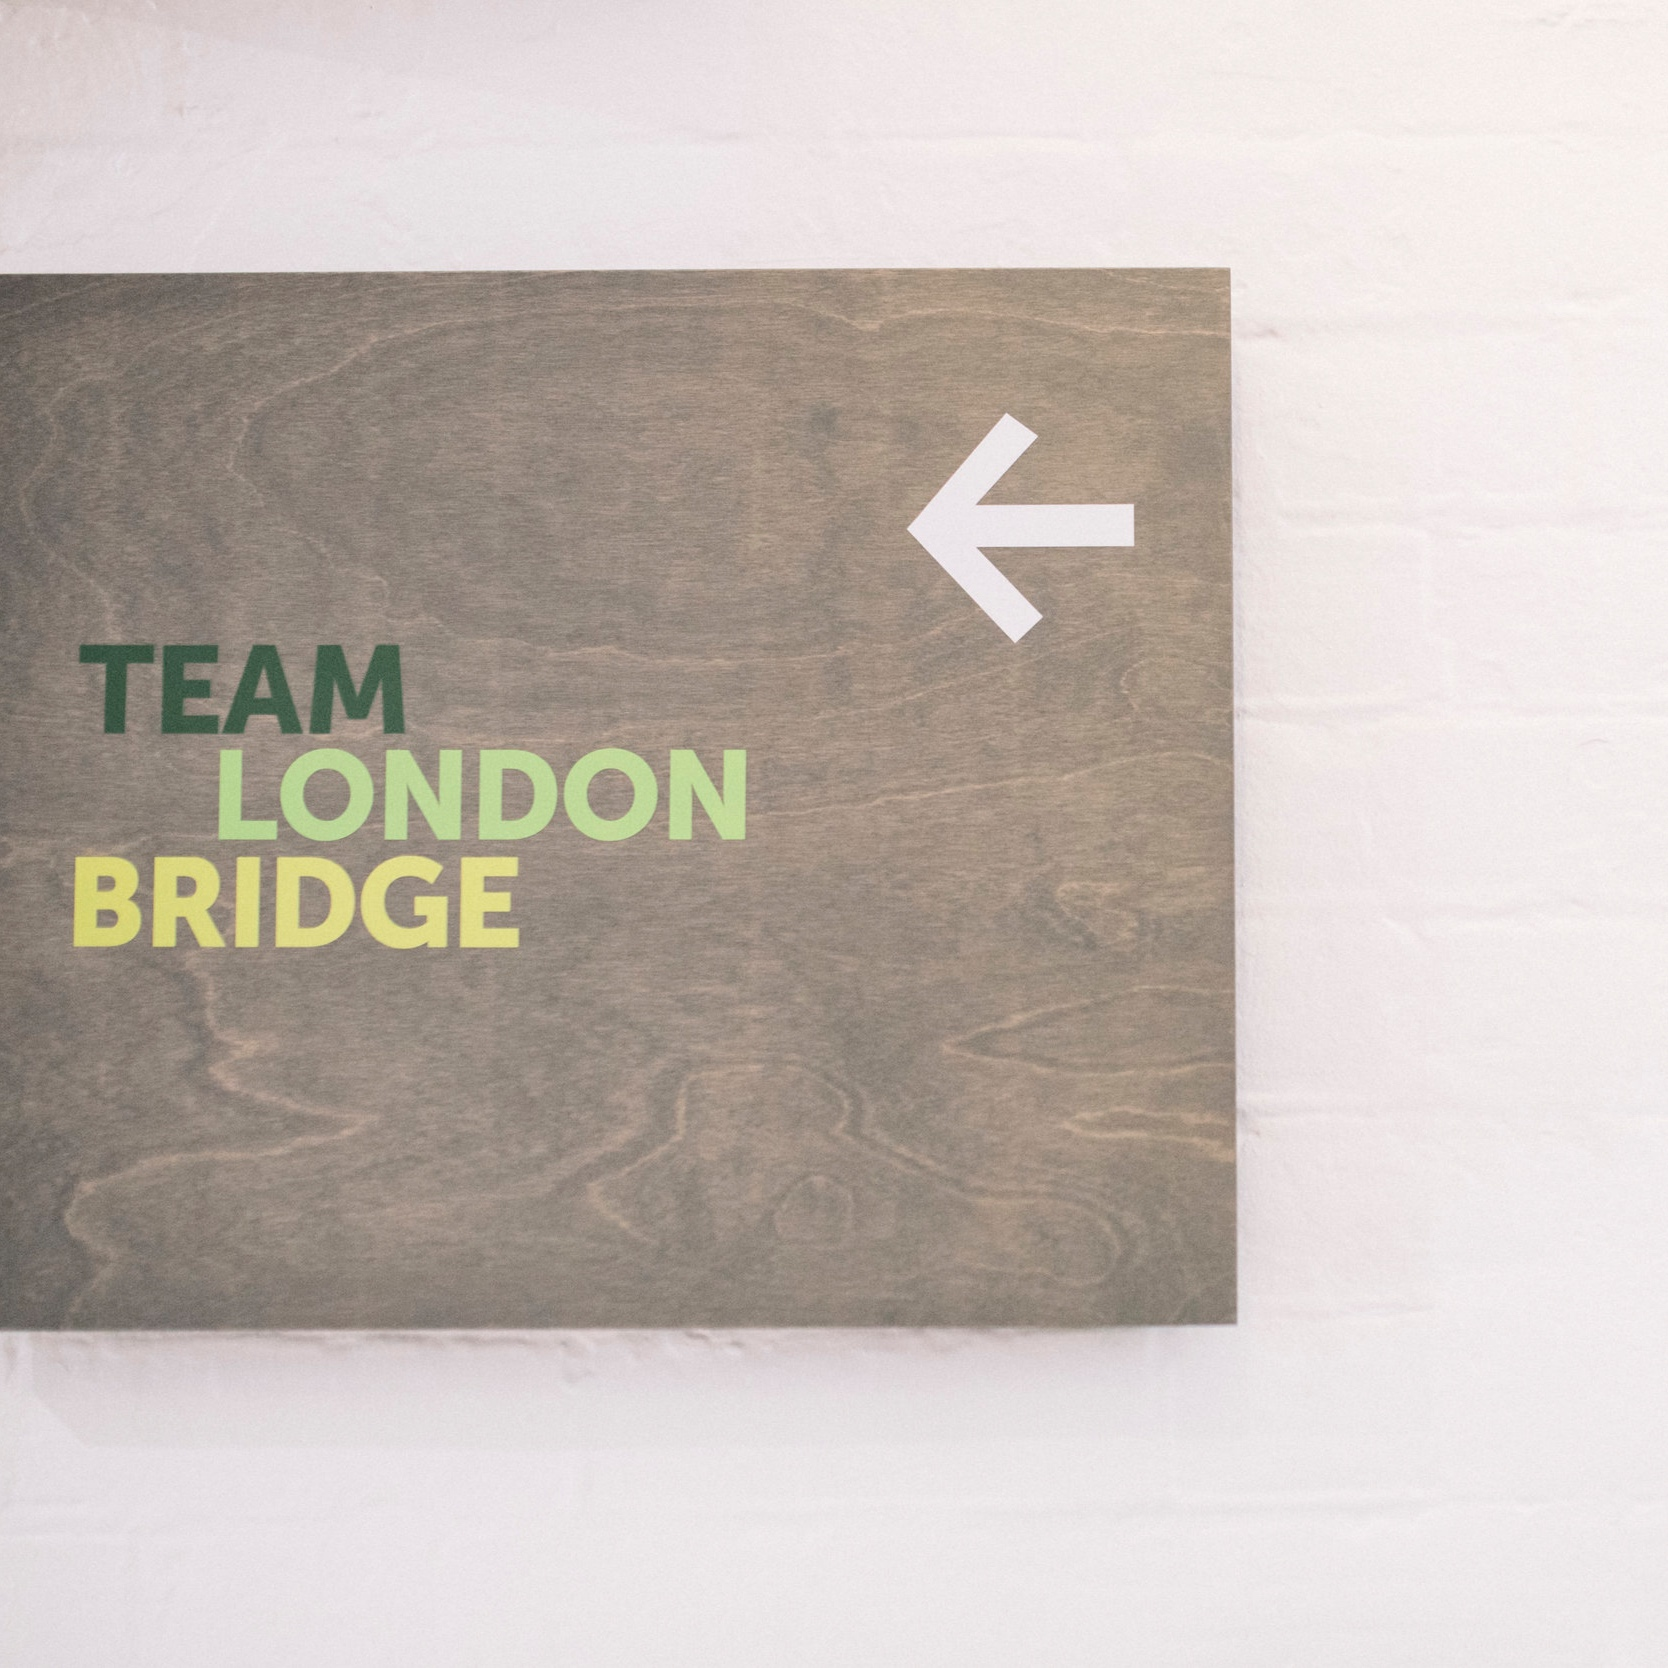 Contact us - For more details on the London Bridge Plan, you can contact the team.Contact+